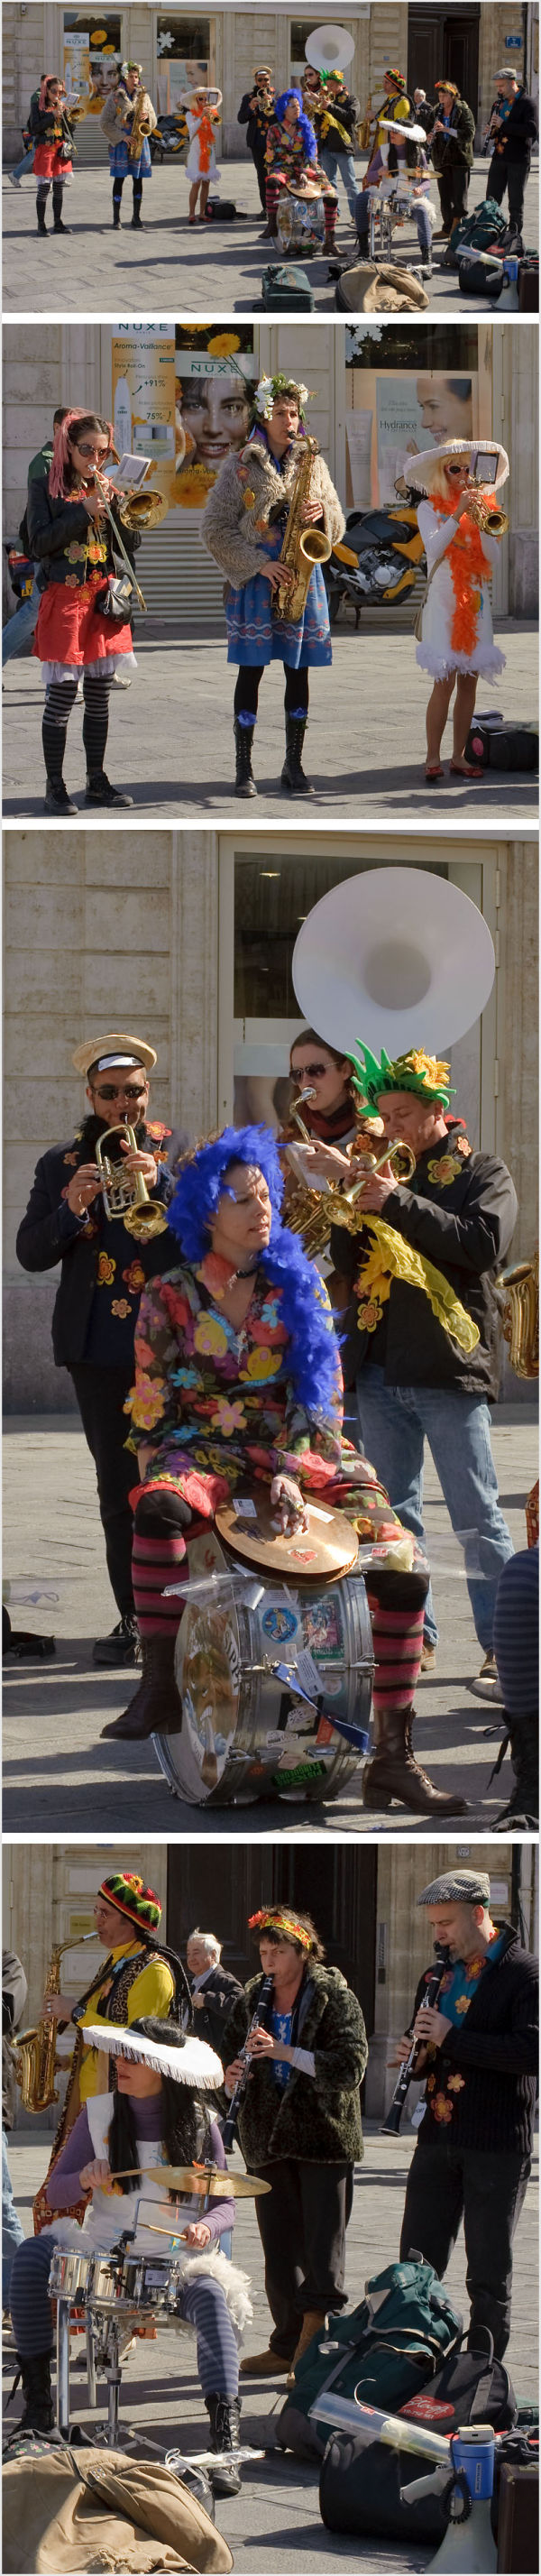 Brass band playing in Montpellier, France.